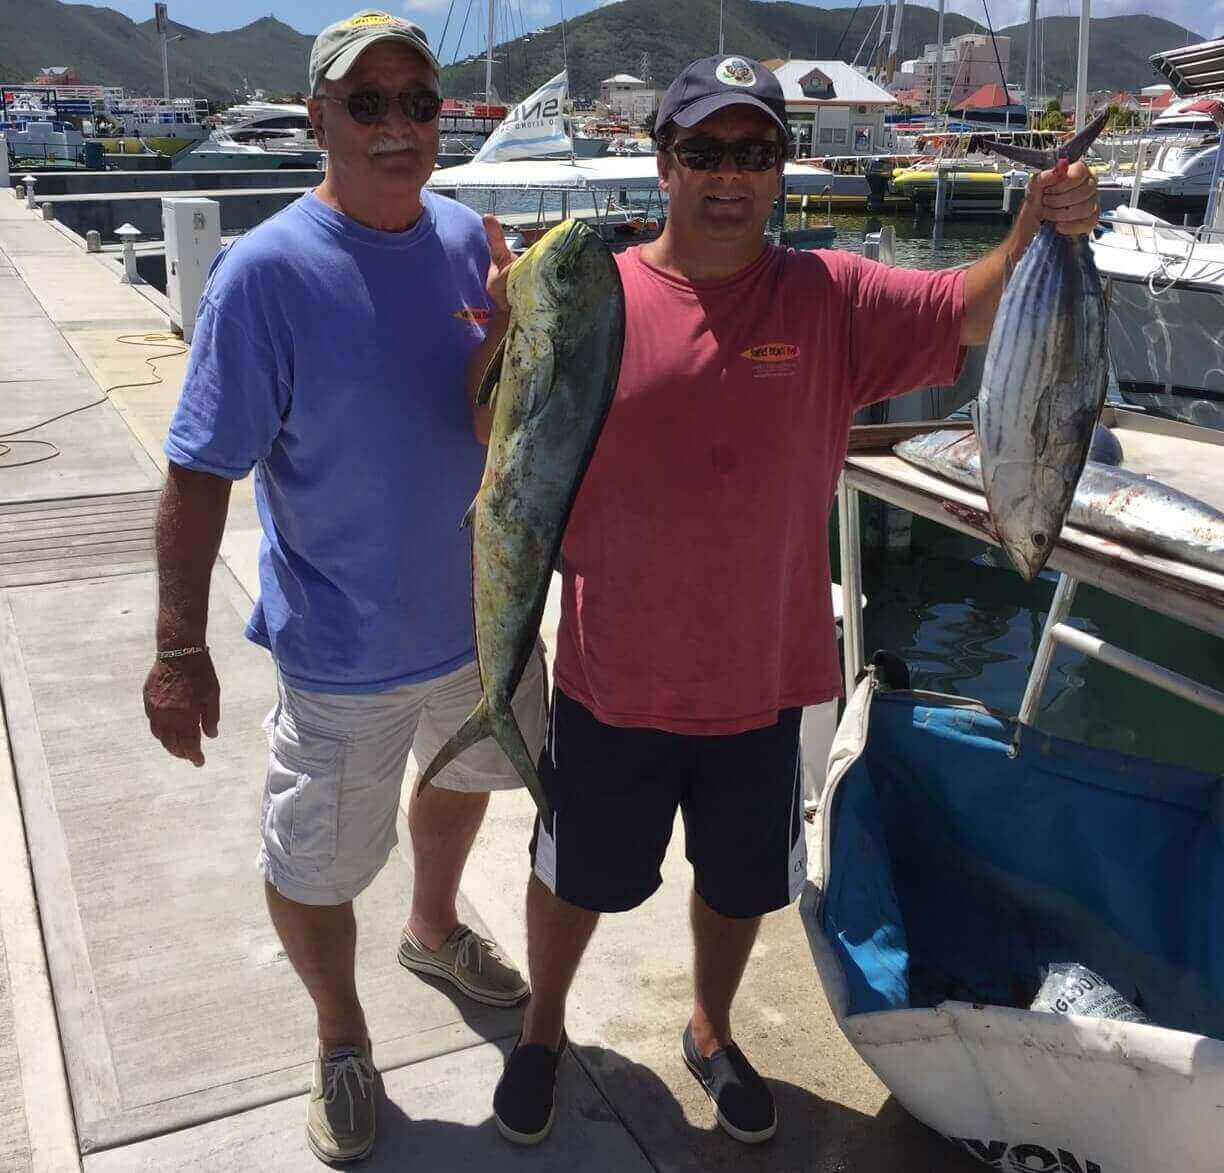 veterans fishing trip example 9